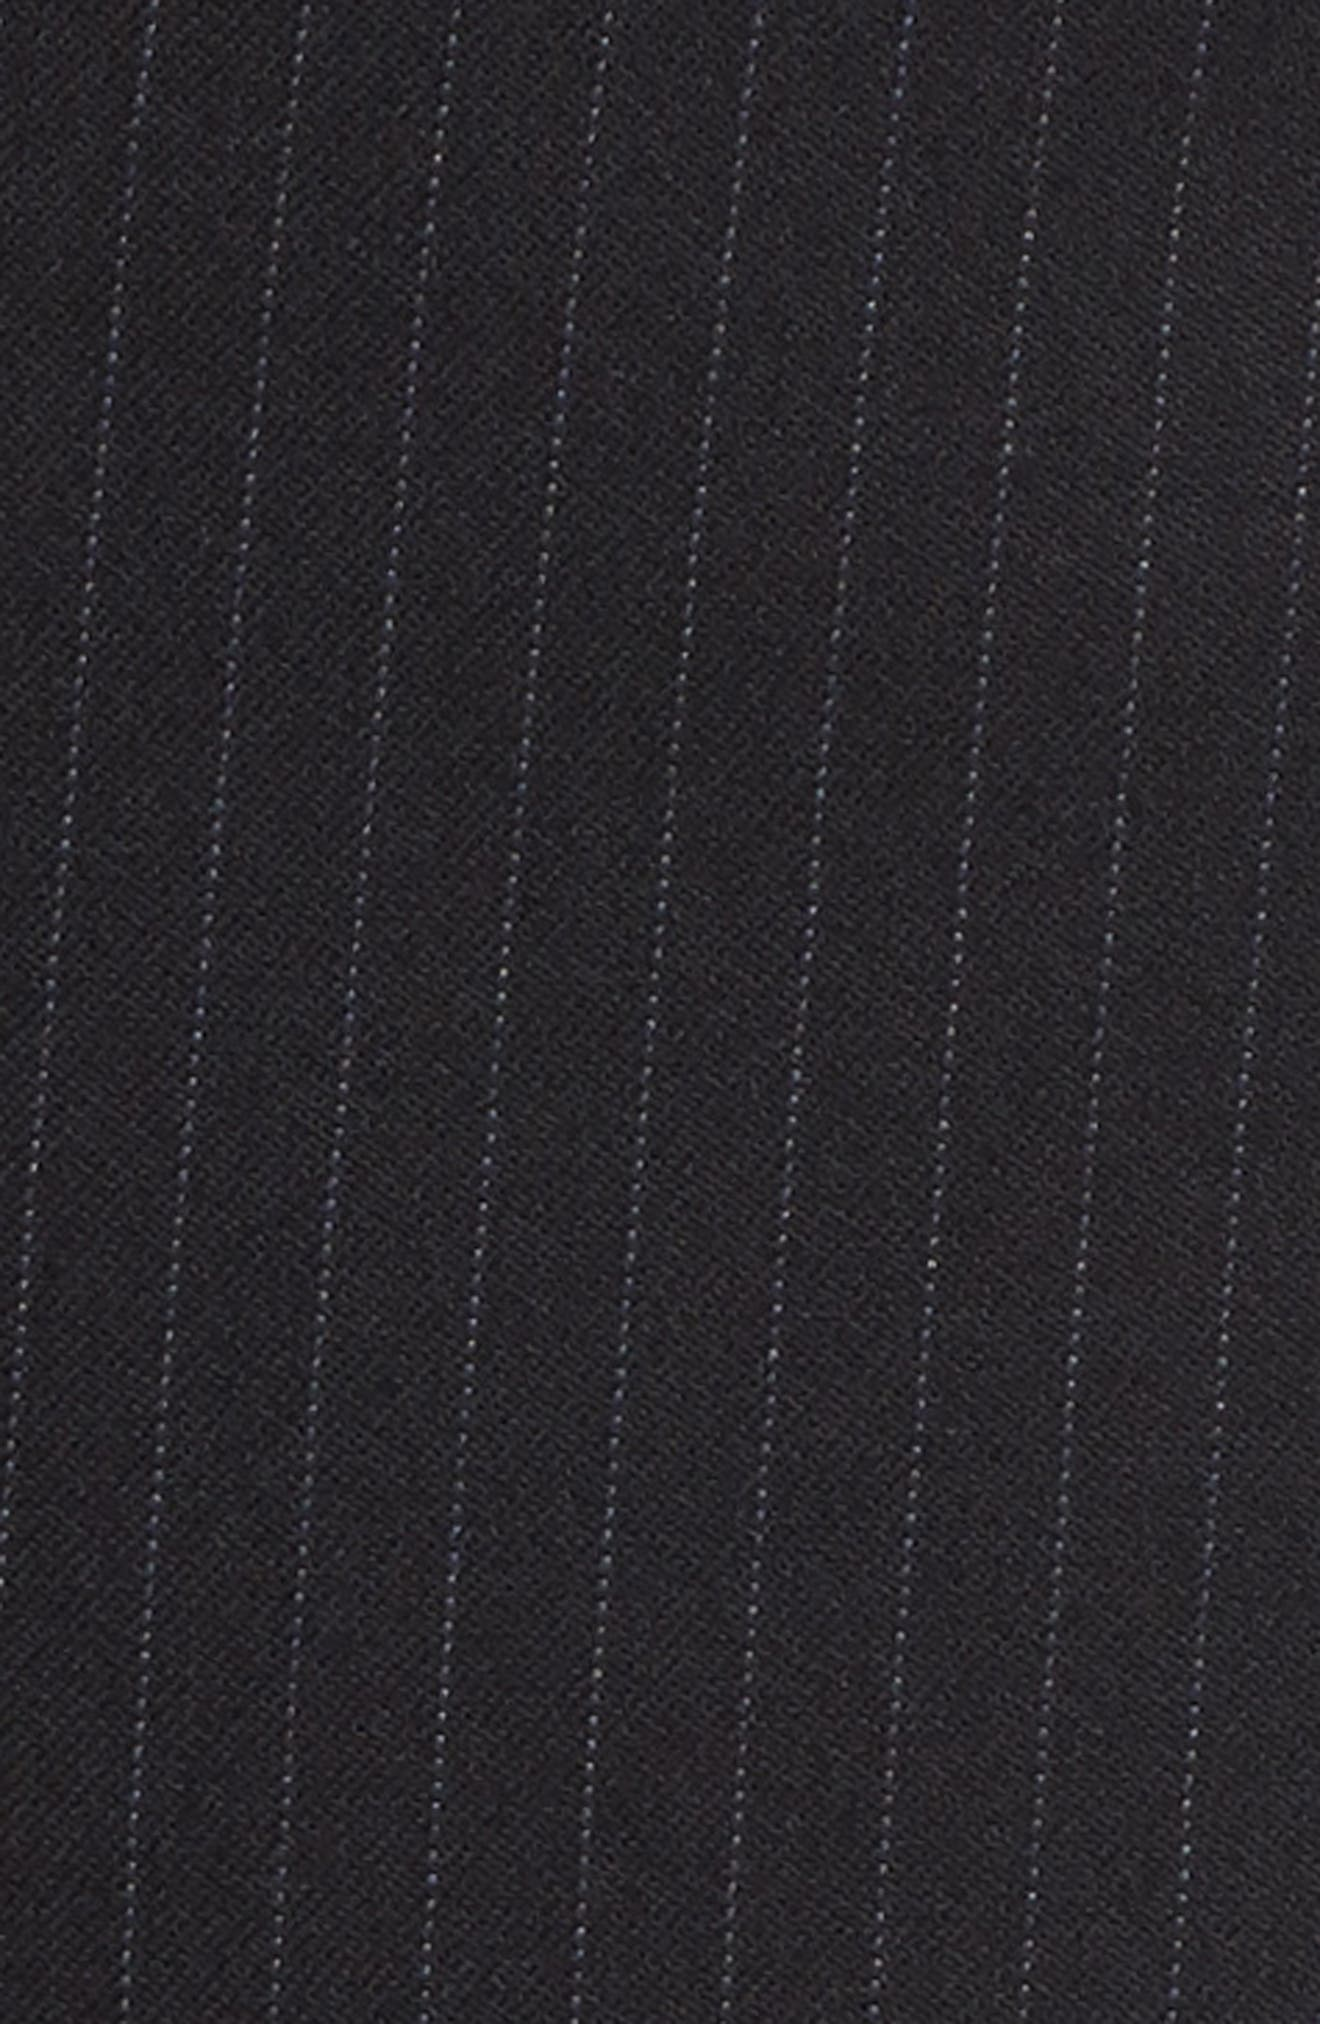 Cuffed Wide Leg Pinstripe Suit Pants,                             Alternate thumbnail 5, color,